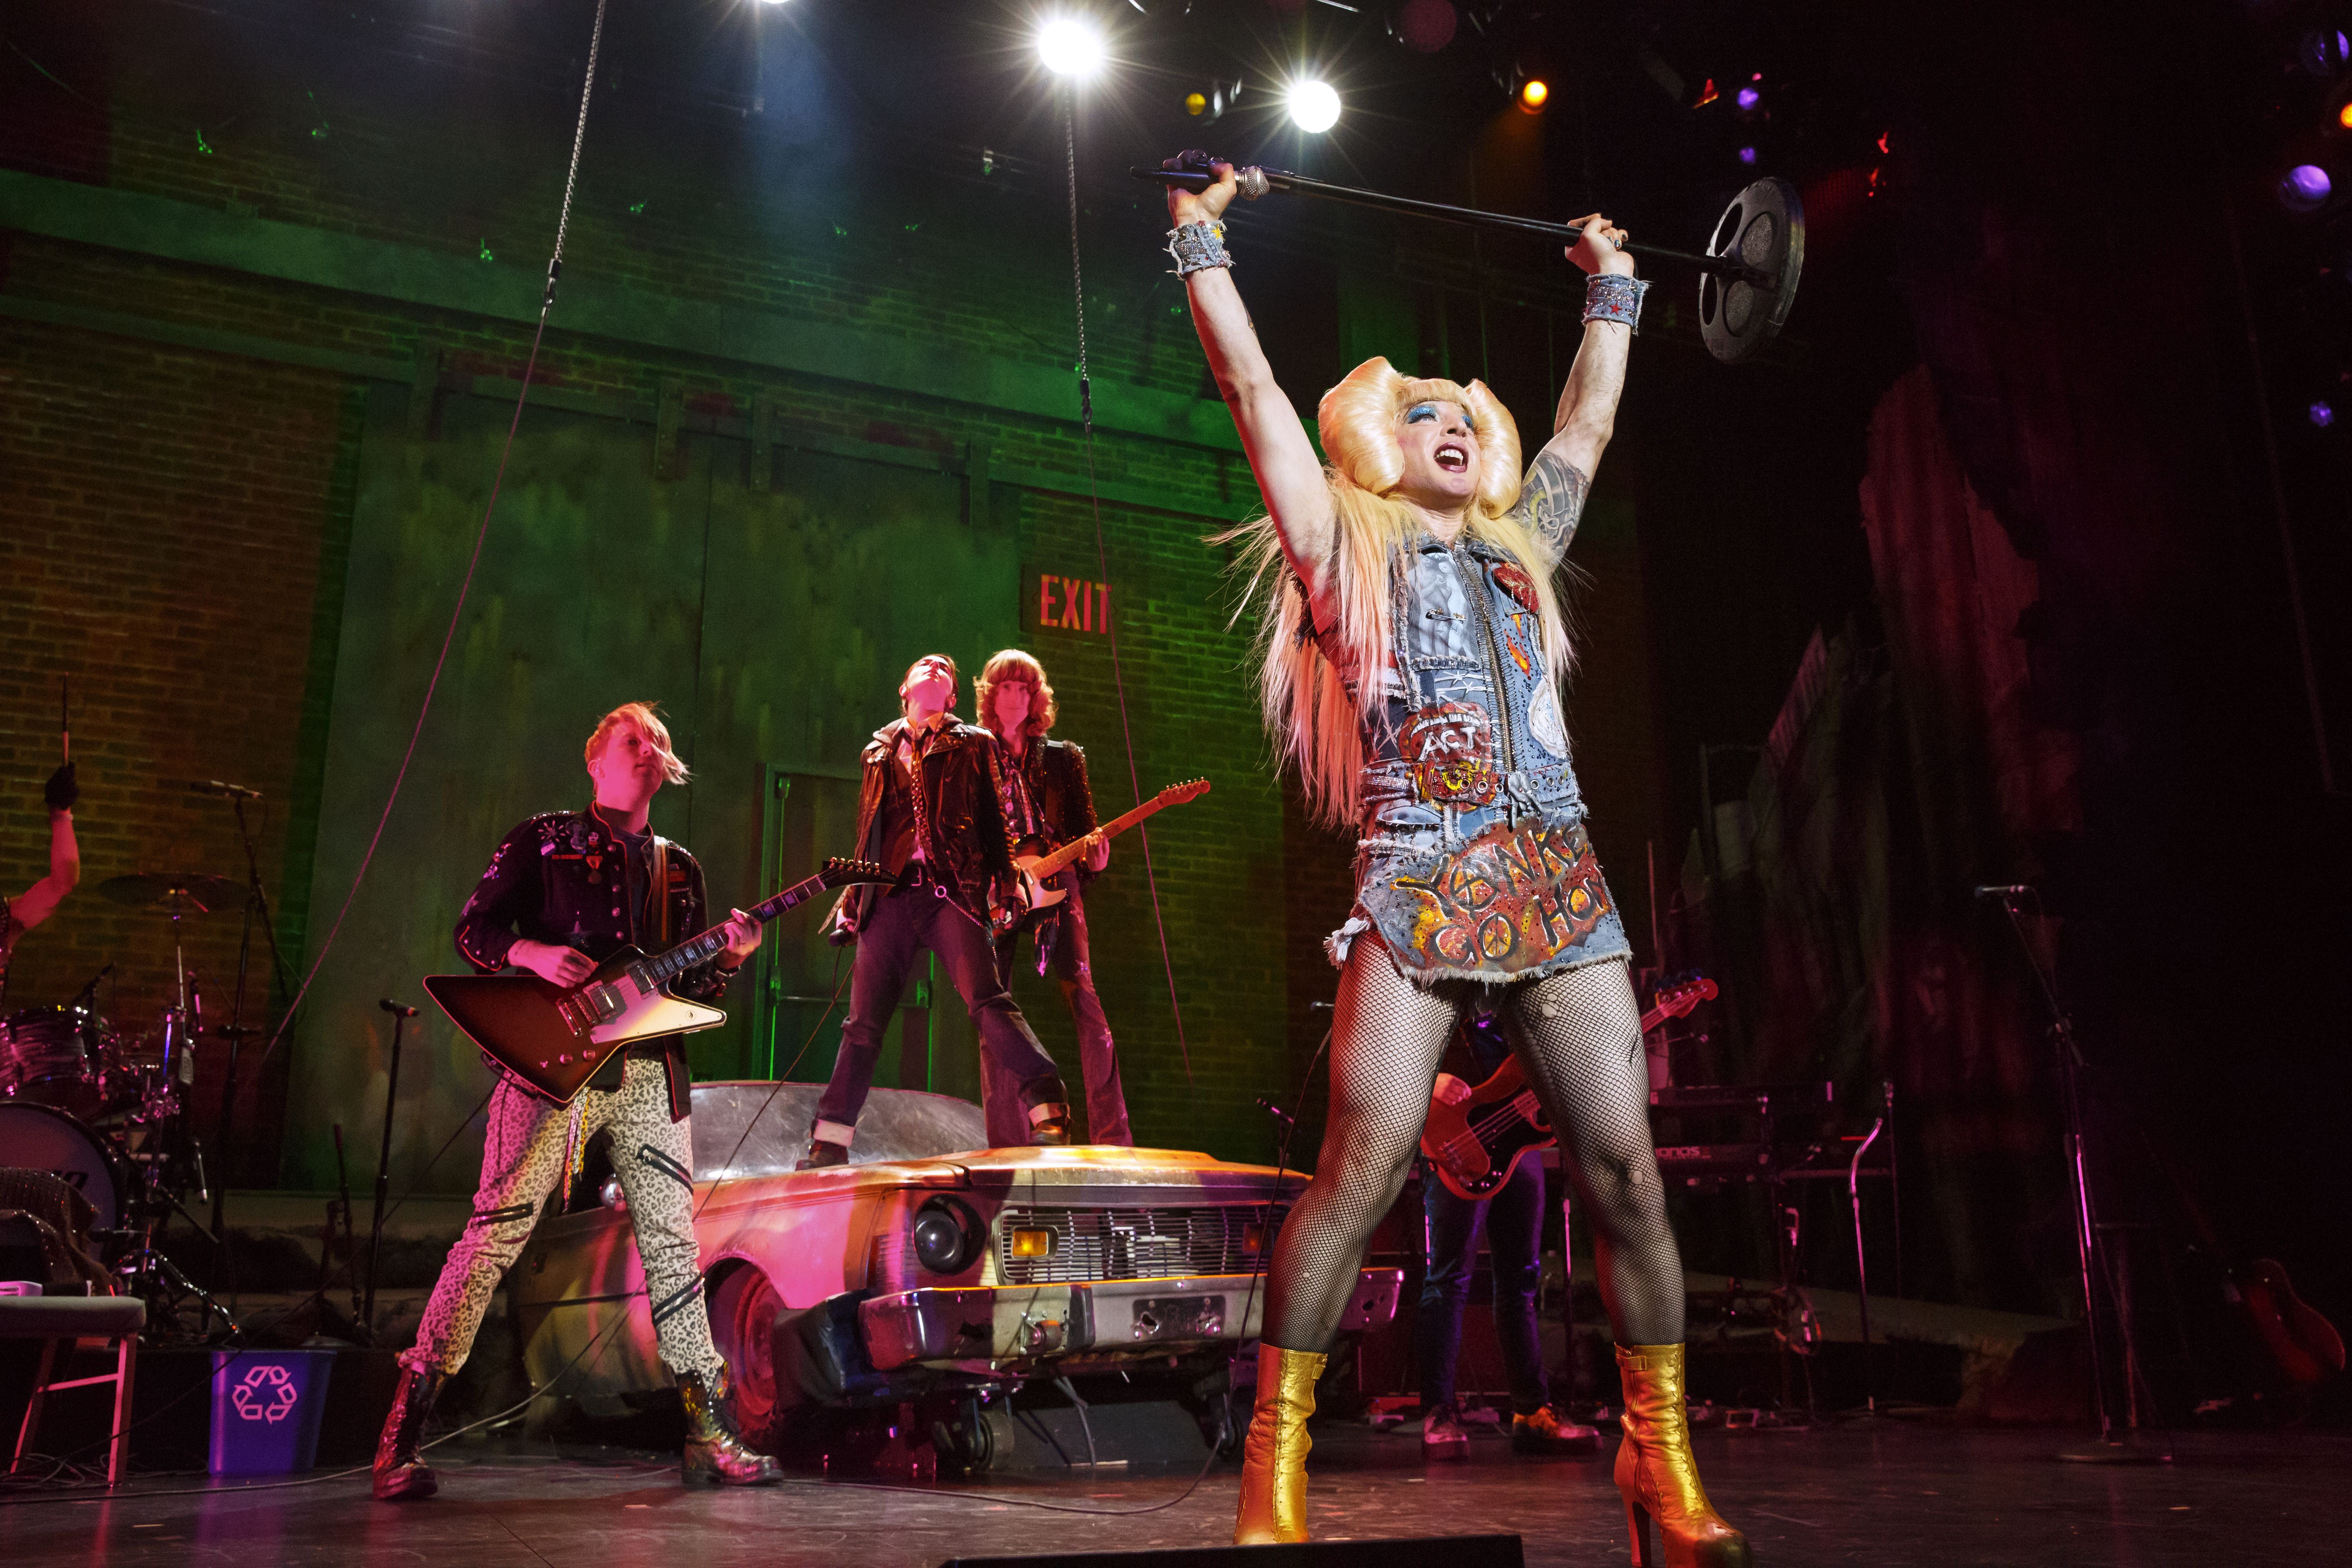 BWW Review: HEDWIG AND THE ANGRY ITCH at Fisher Theatre is a Definite Must-Have Experience!